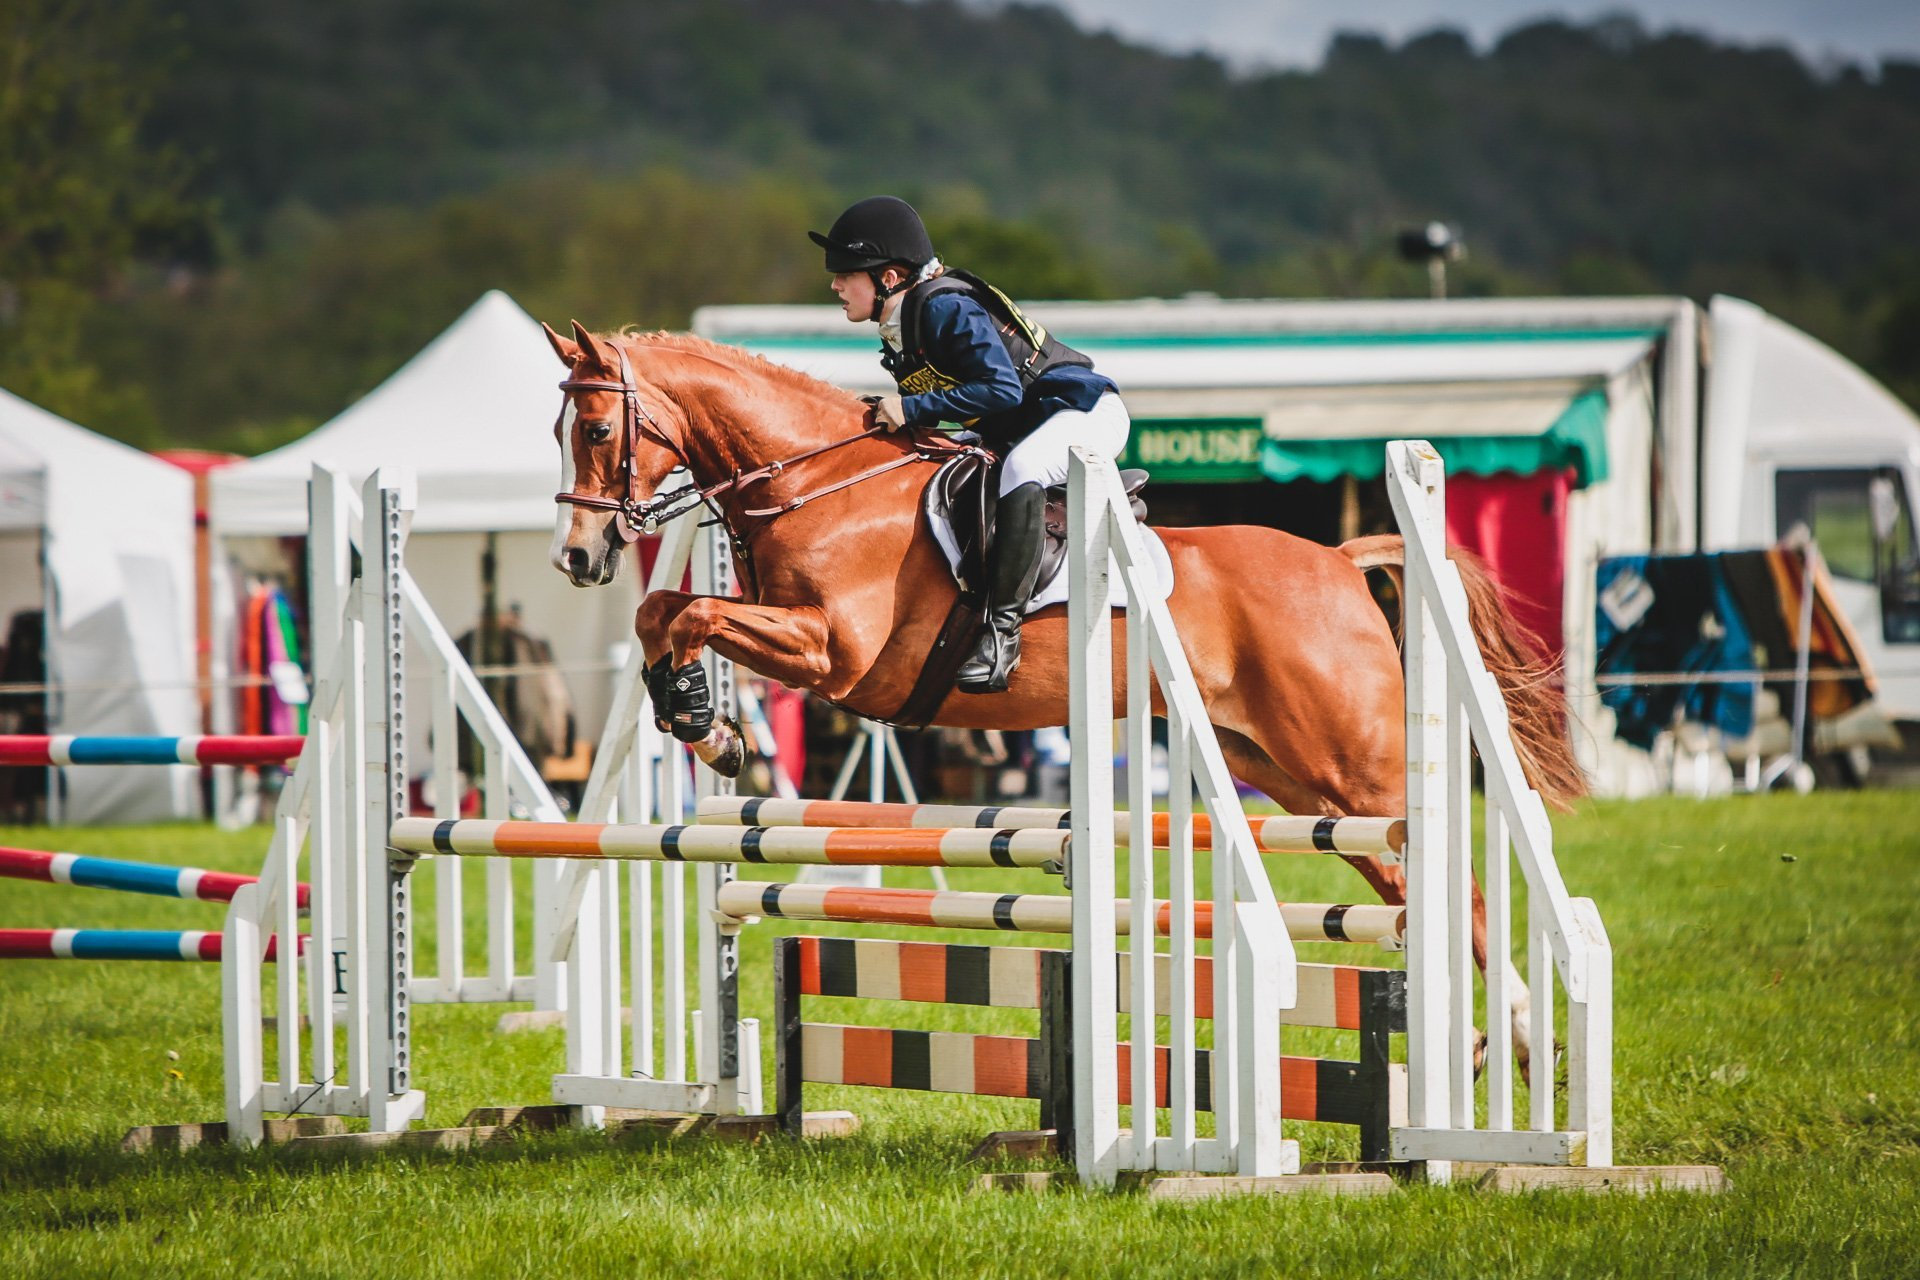 Isabella Shaw and Only Sometimes in the showjumping ring